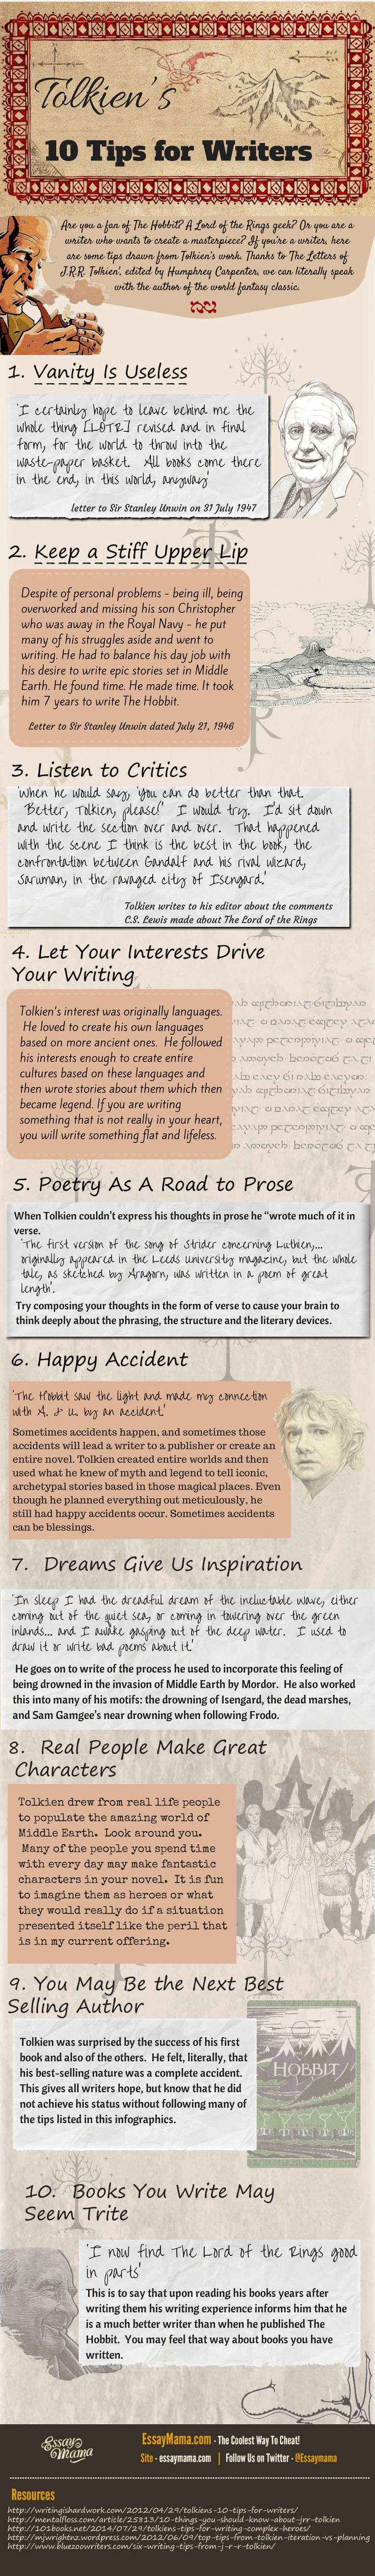 #Writing tips from Tolkien - an insightful #infographic